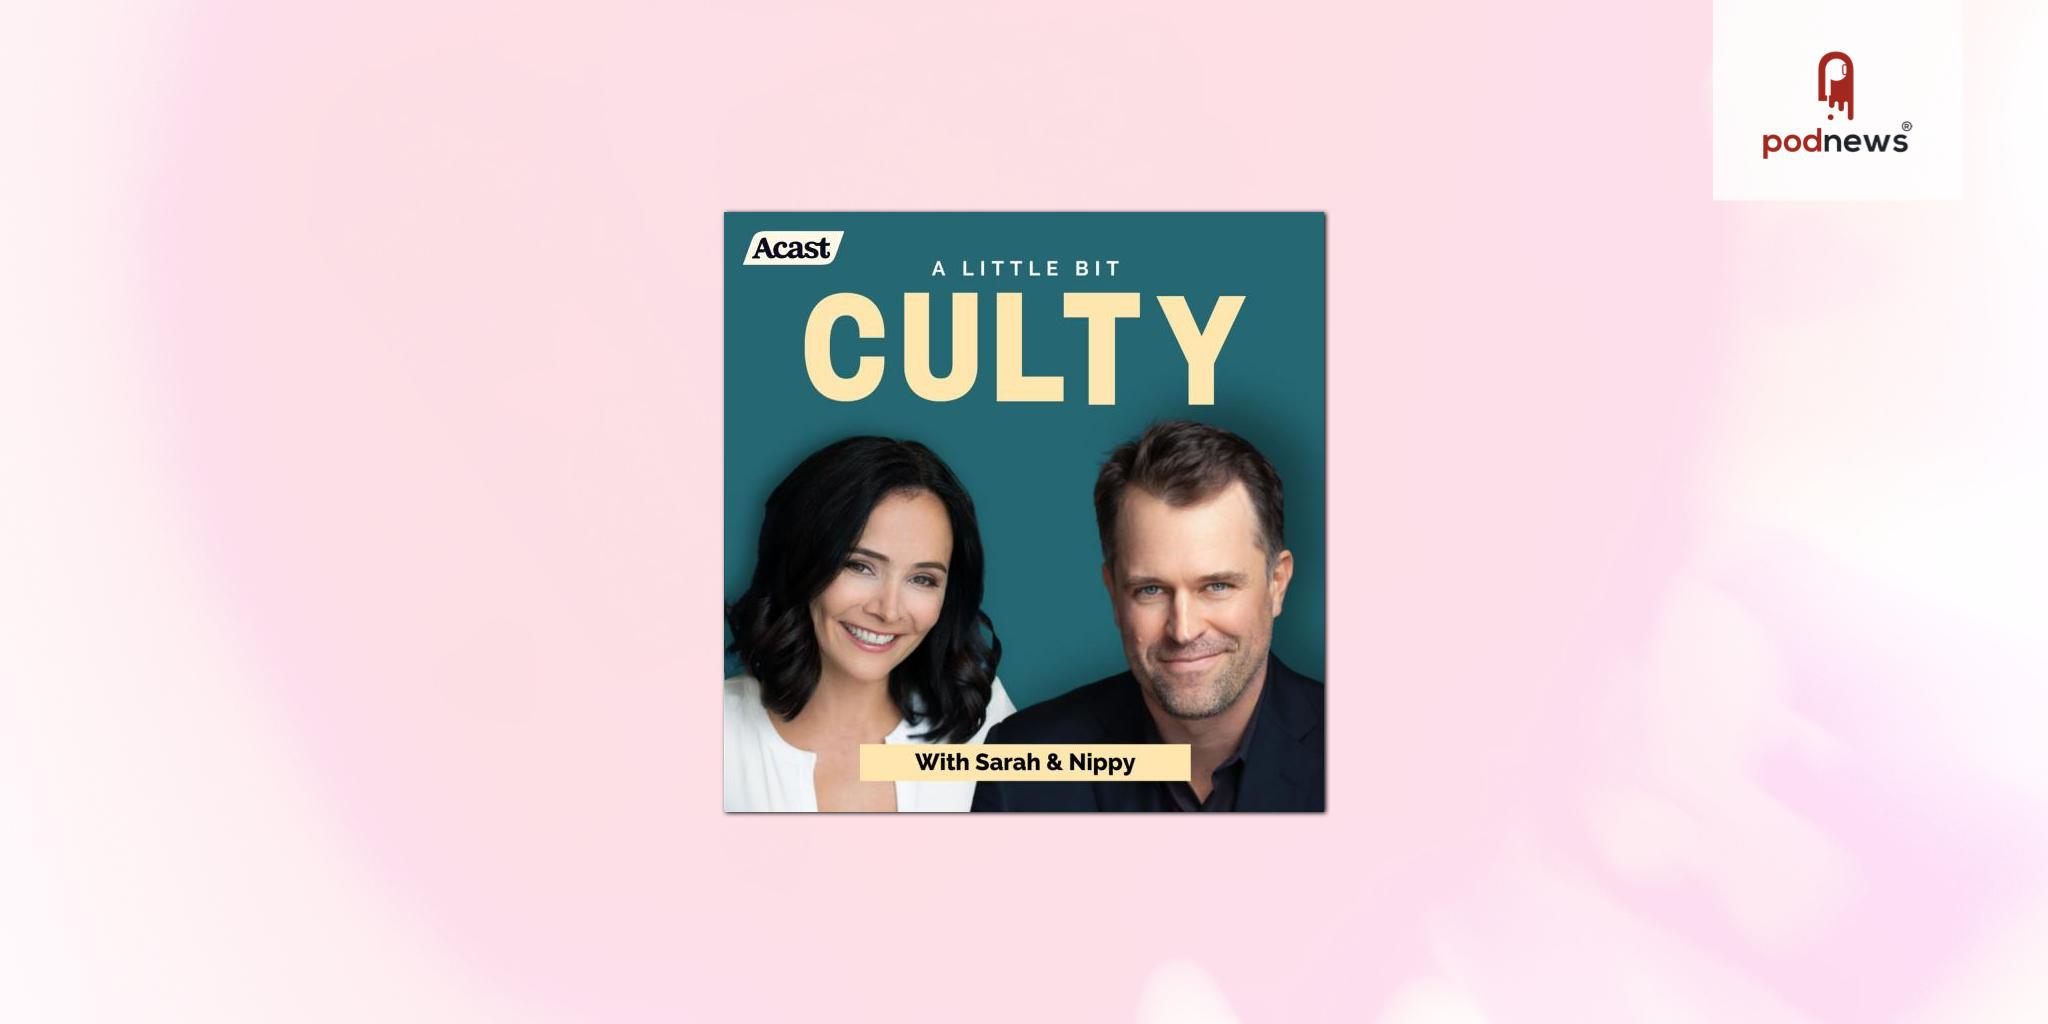 A Little Bit Culty podcast signs to Acast, returns for Season 2